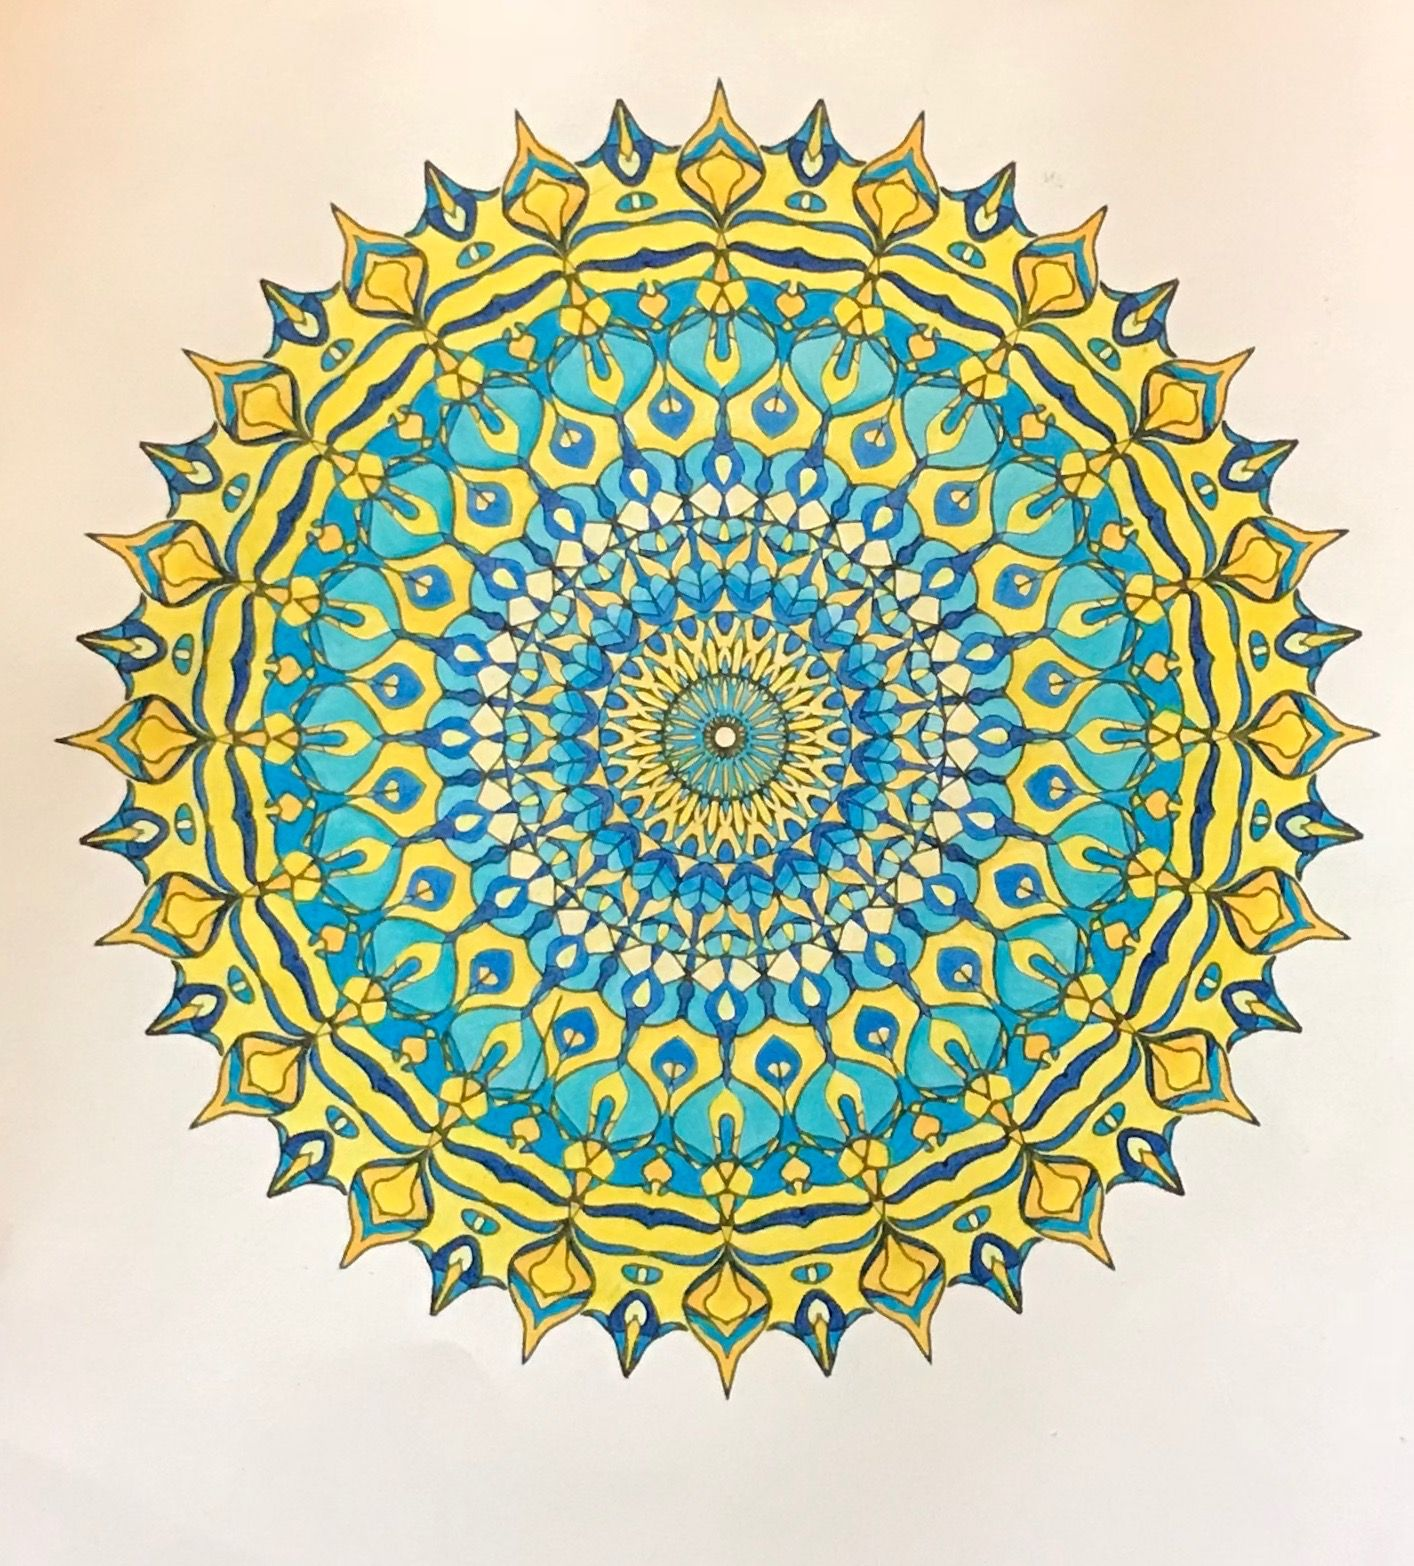 A Mandala Design From Treetalkerart Com Colored By B Holmes 12 29 2018 With Schpirrer Farben Colored Penci Mandala Design Mandala Coloring Mandala Meditation